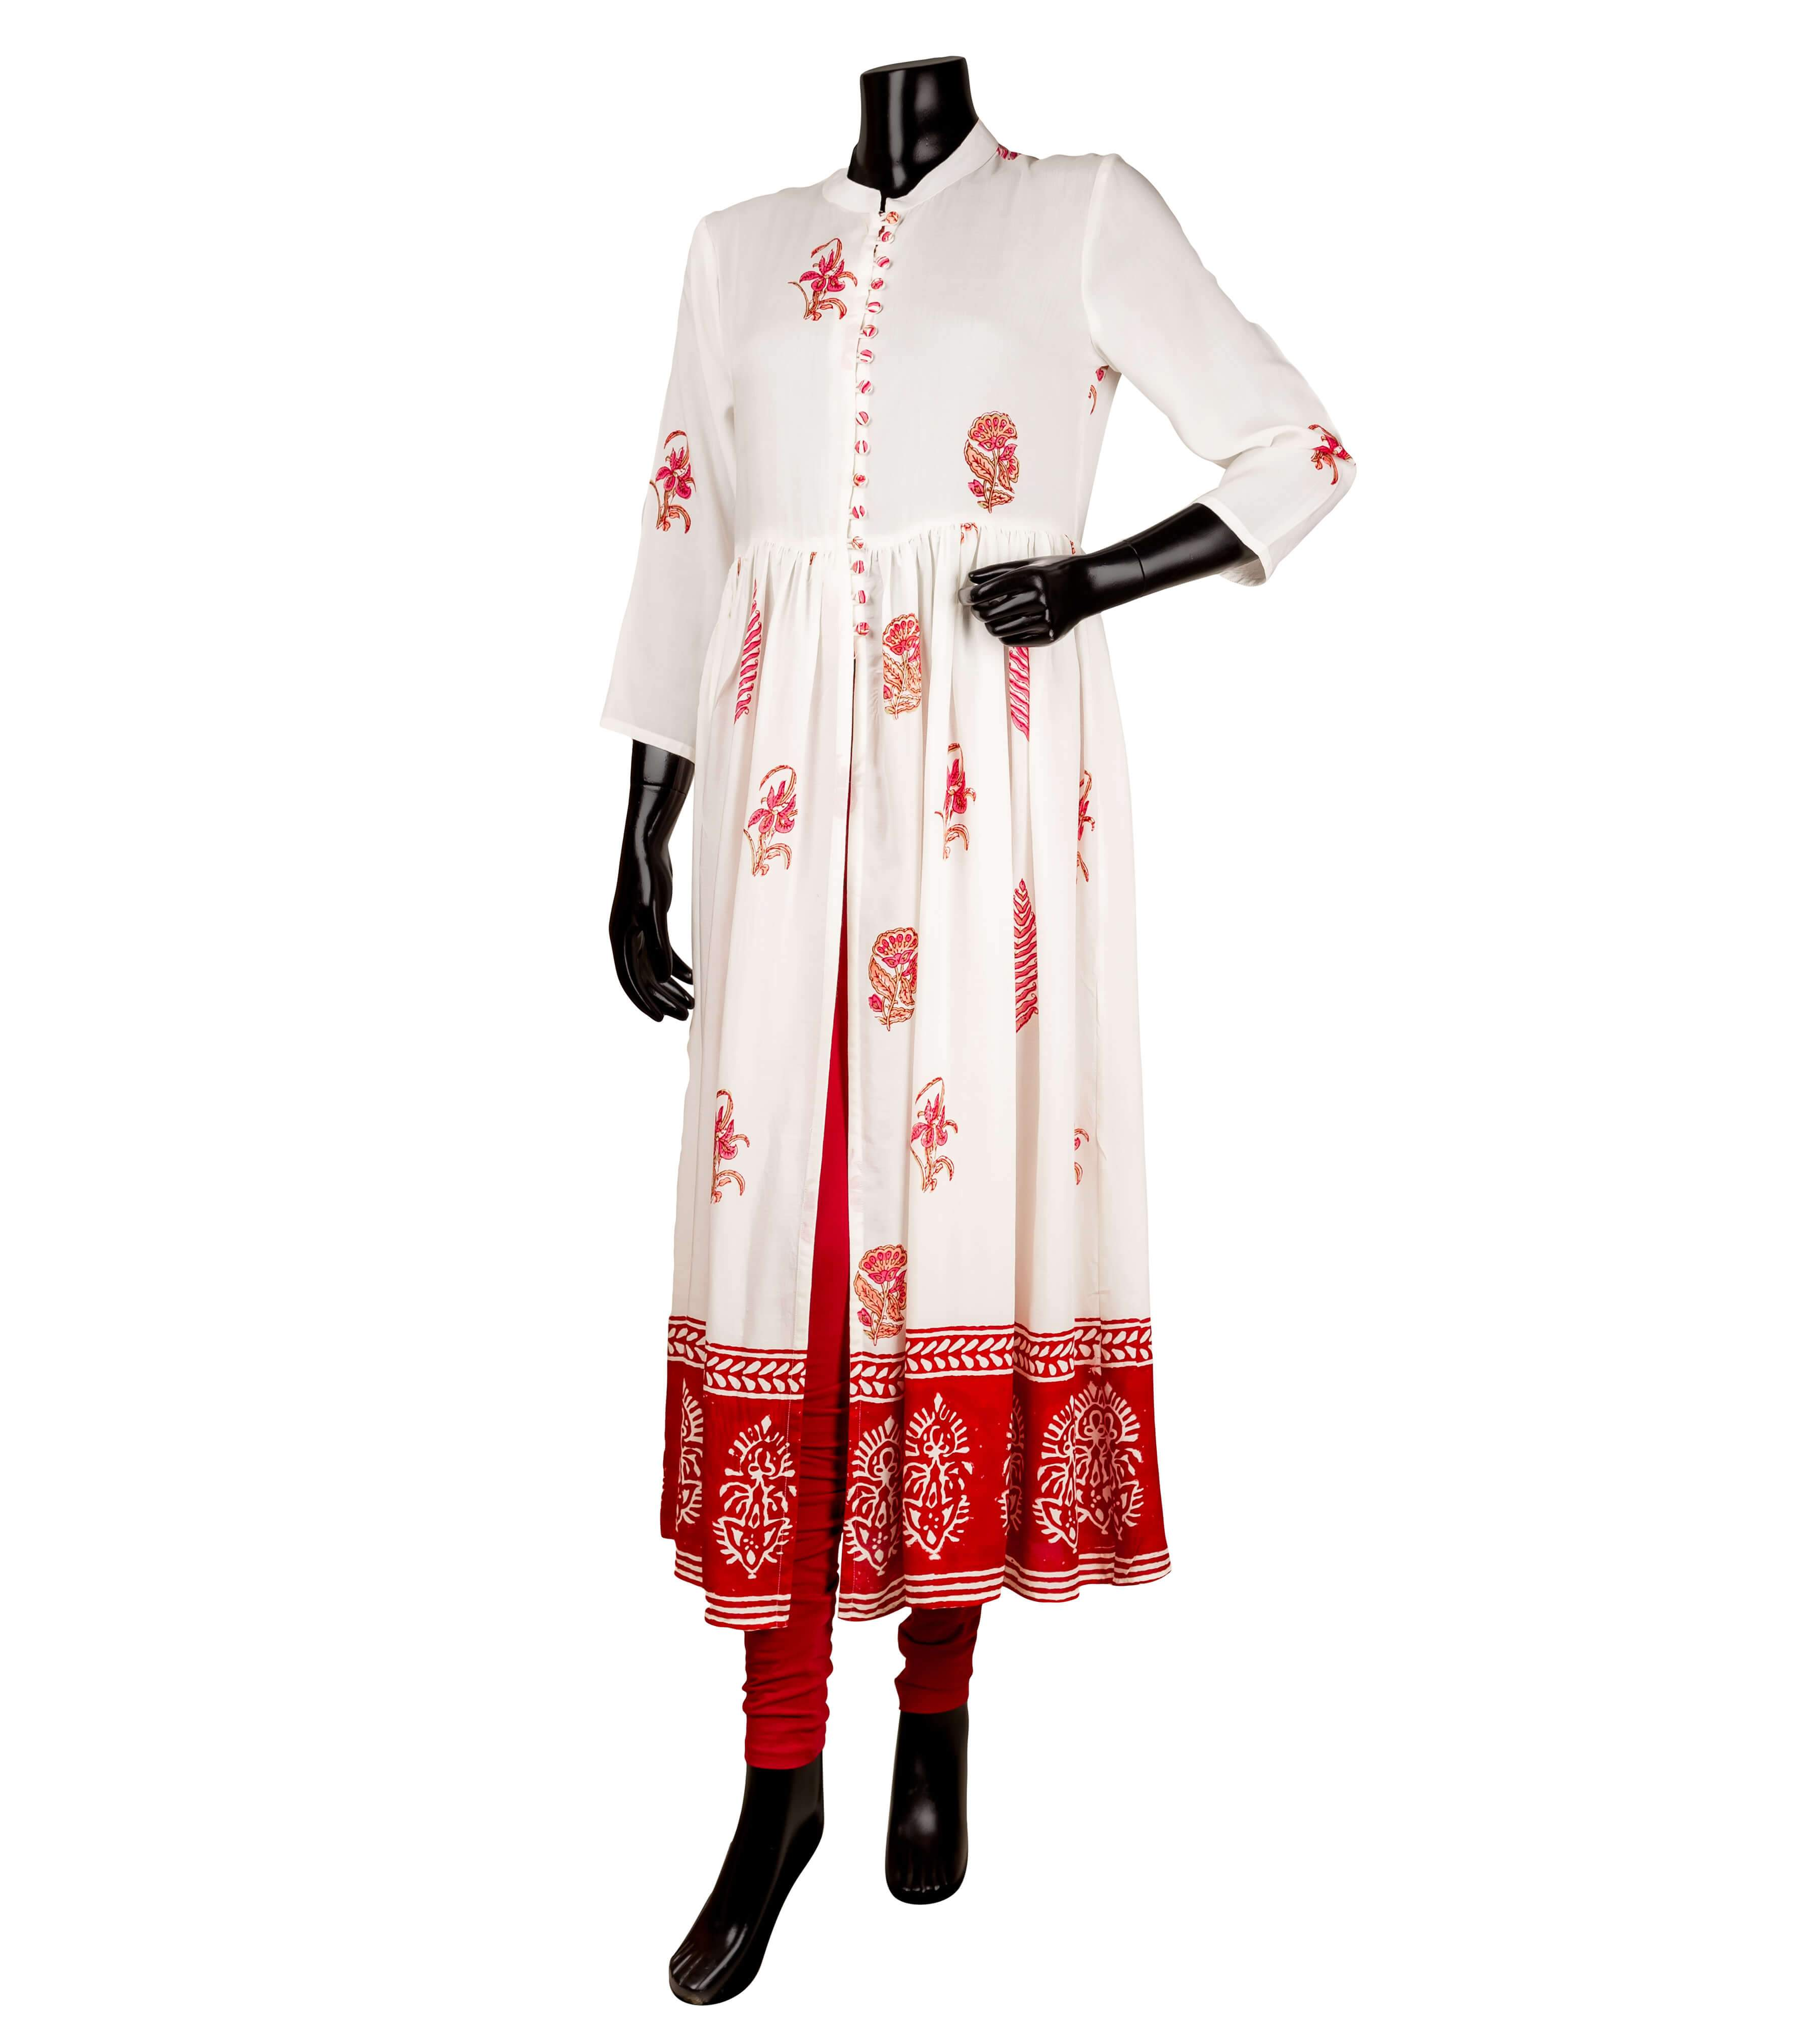 White and red Cotton Anarkali style kurta with center slit